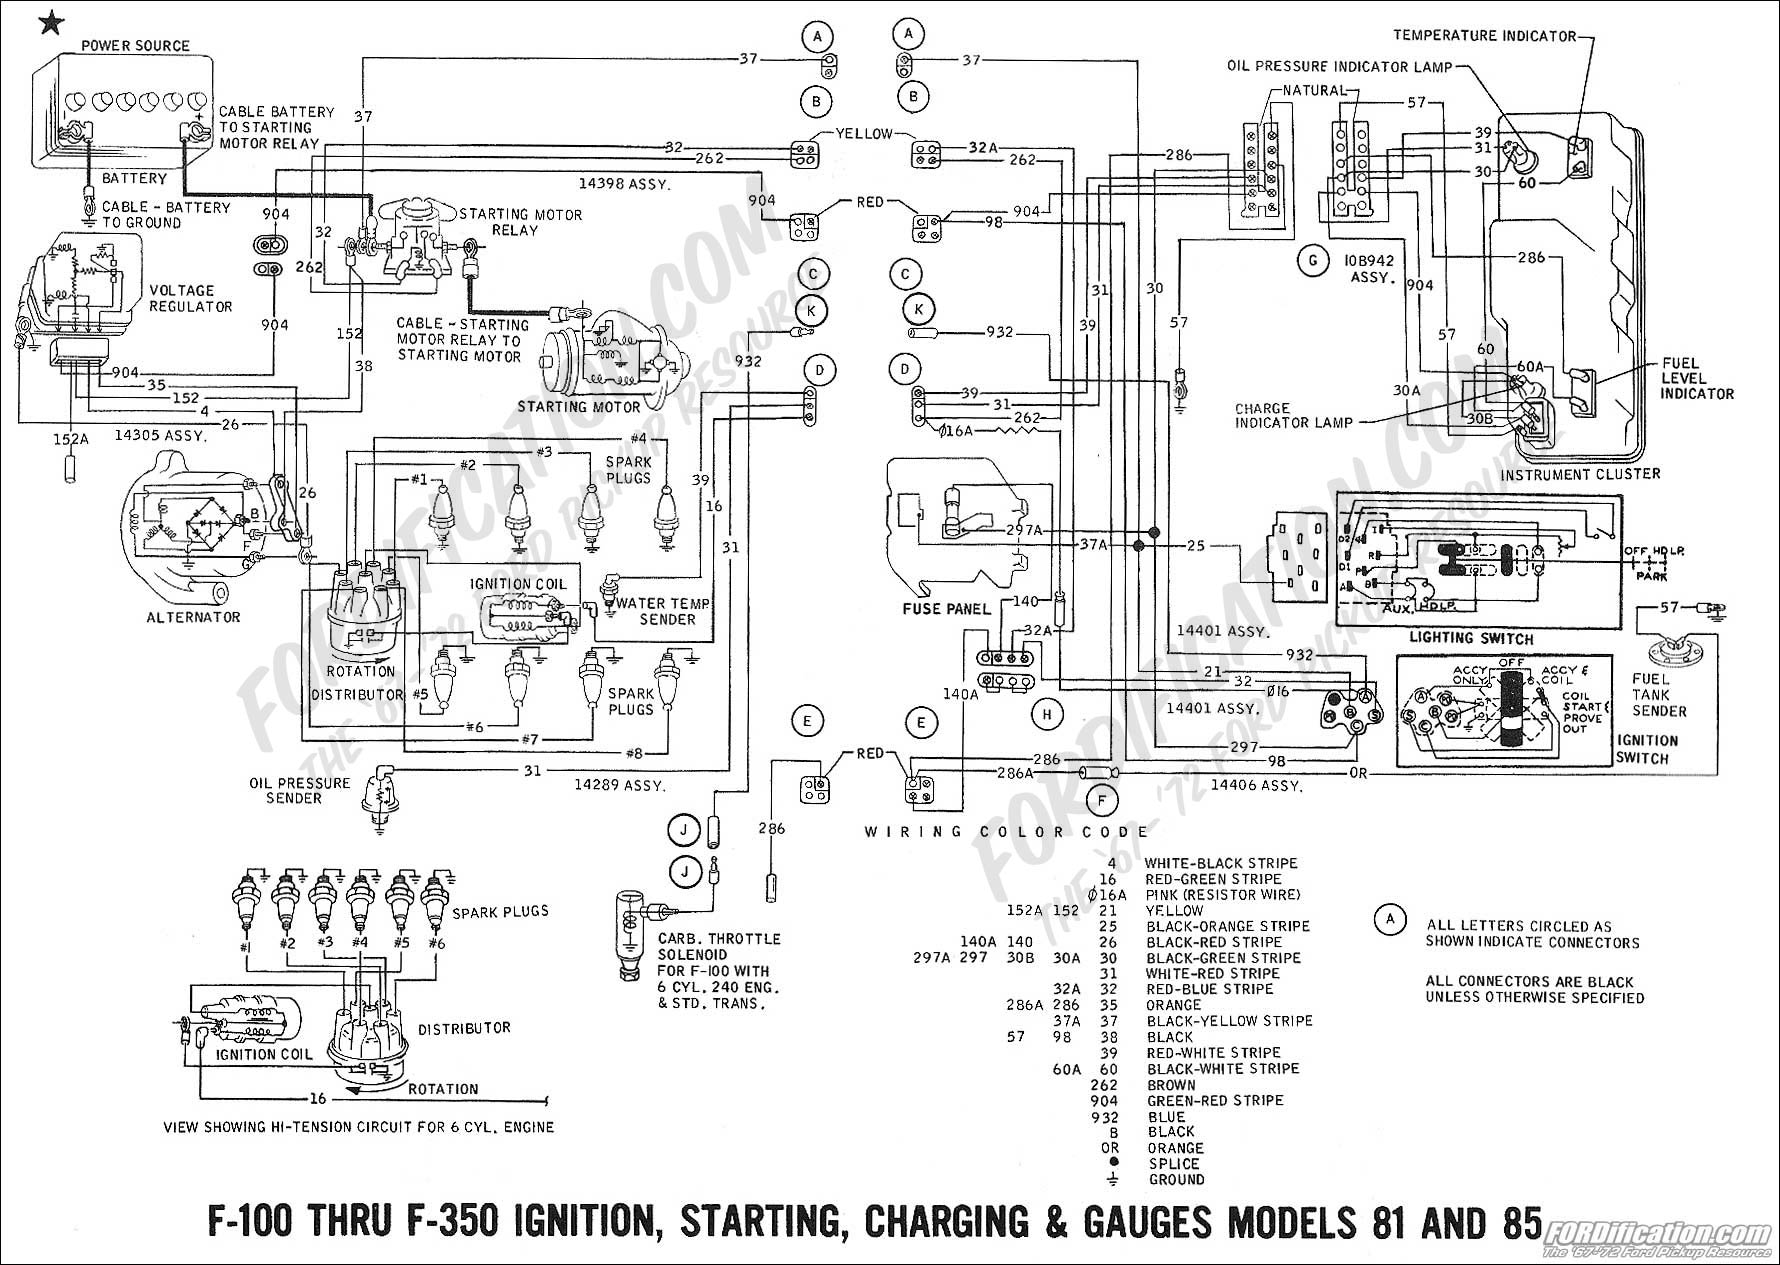 1973 Ford F100 Wiring Diagram Anything Diagrams 99 Lumina Turn Signal Truck Technical Drawings And Schematics Section H Rh Fordification Com Alternator